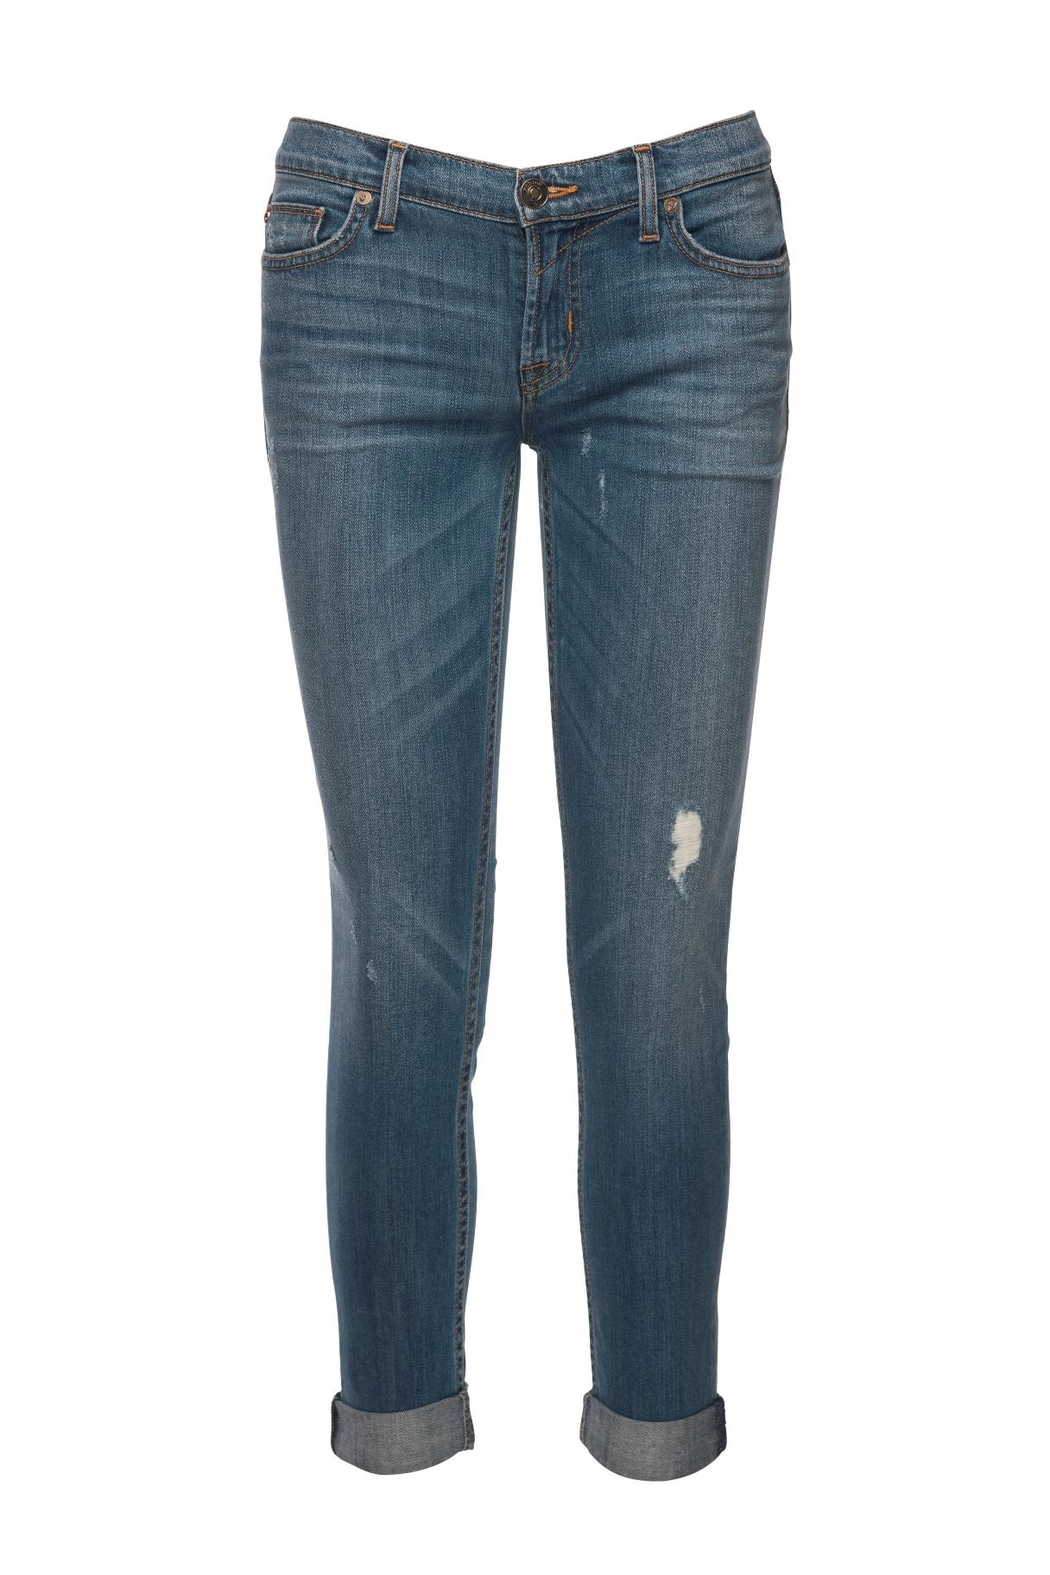 Hudson Jeans Tally Crop Skinny Jean - Front Full Image